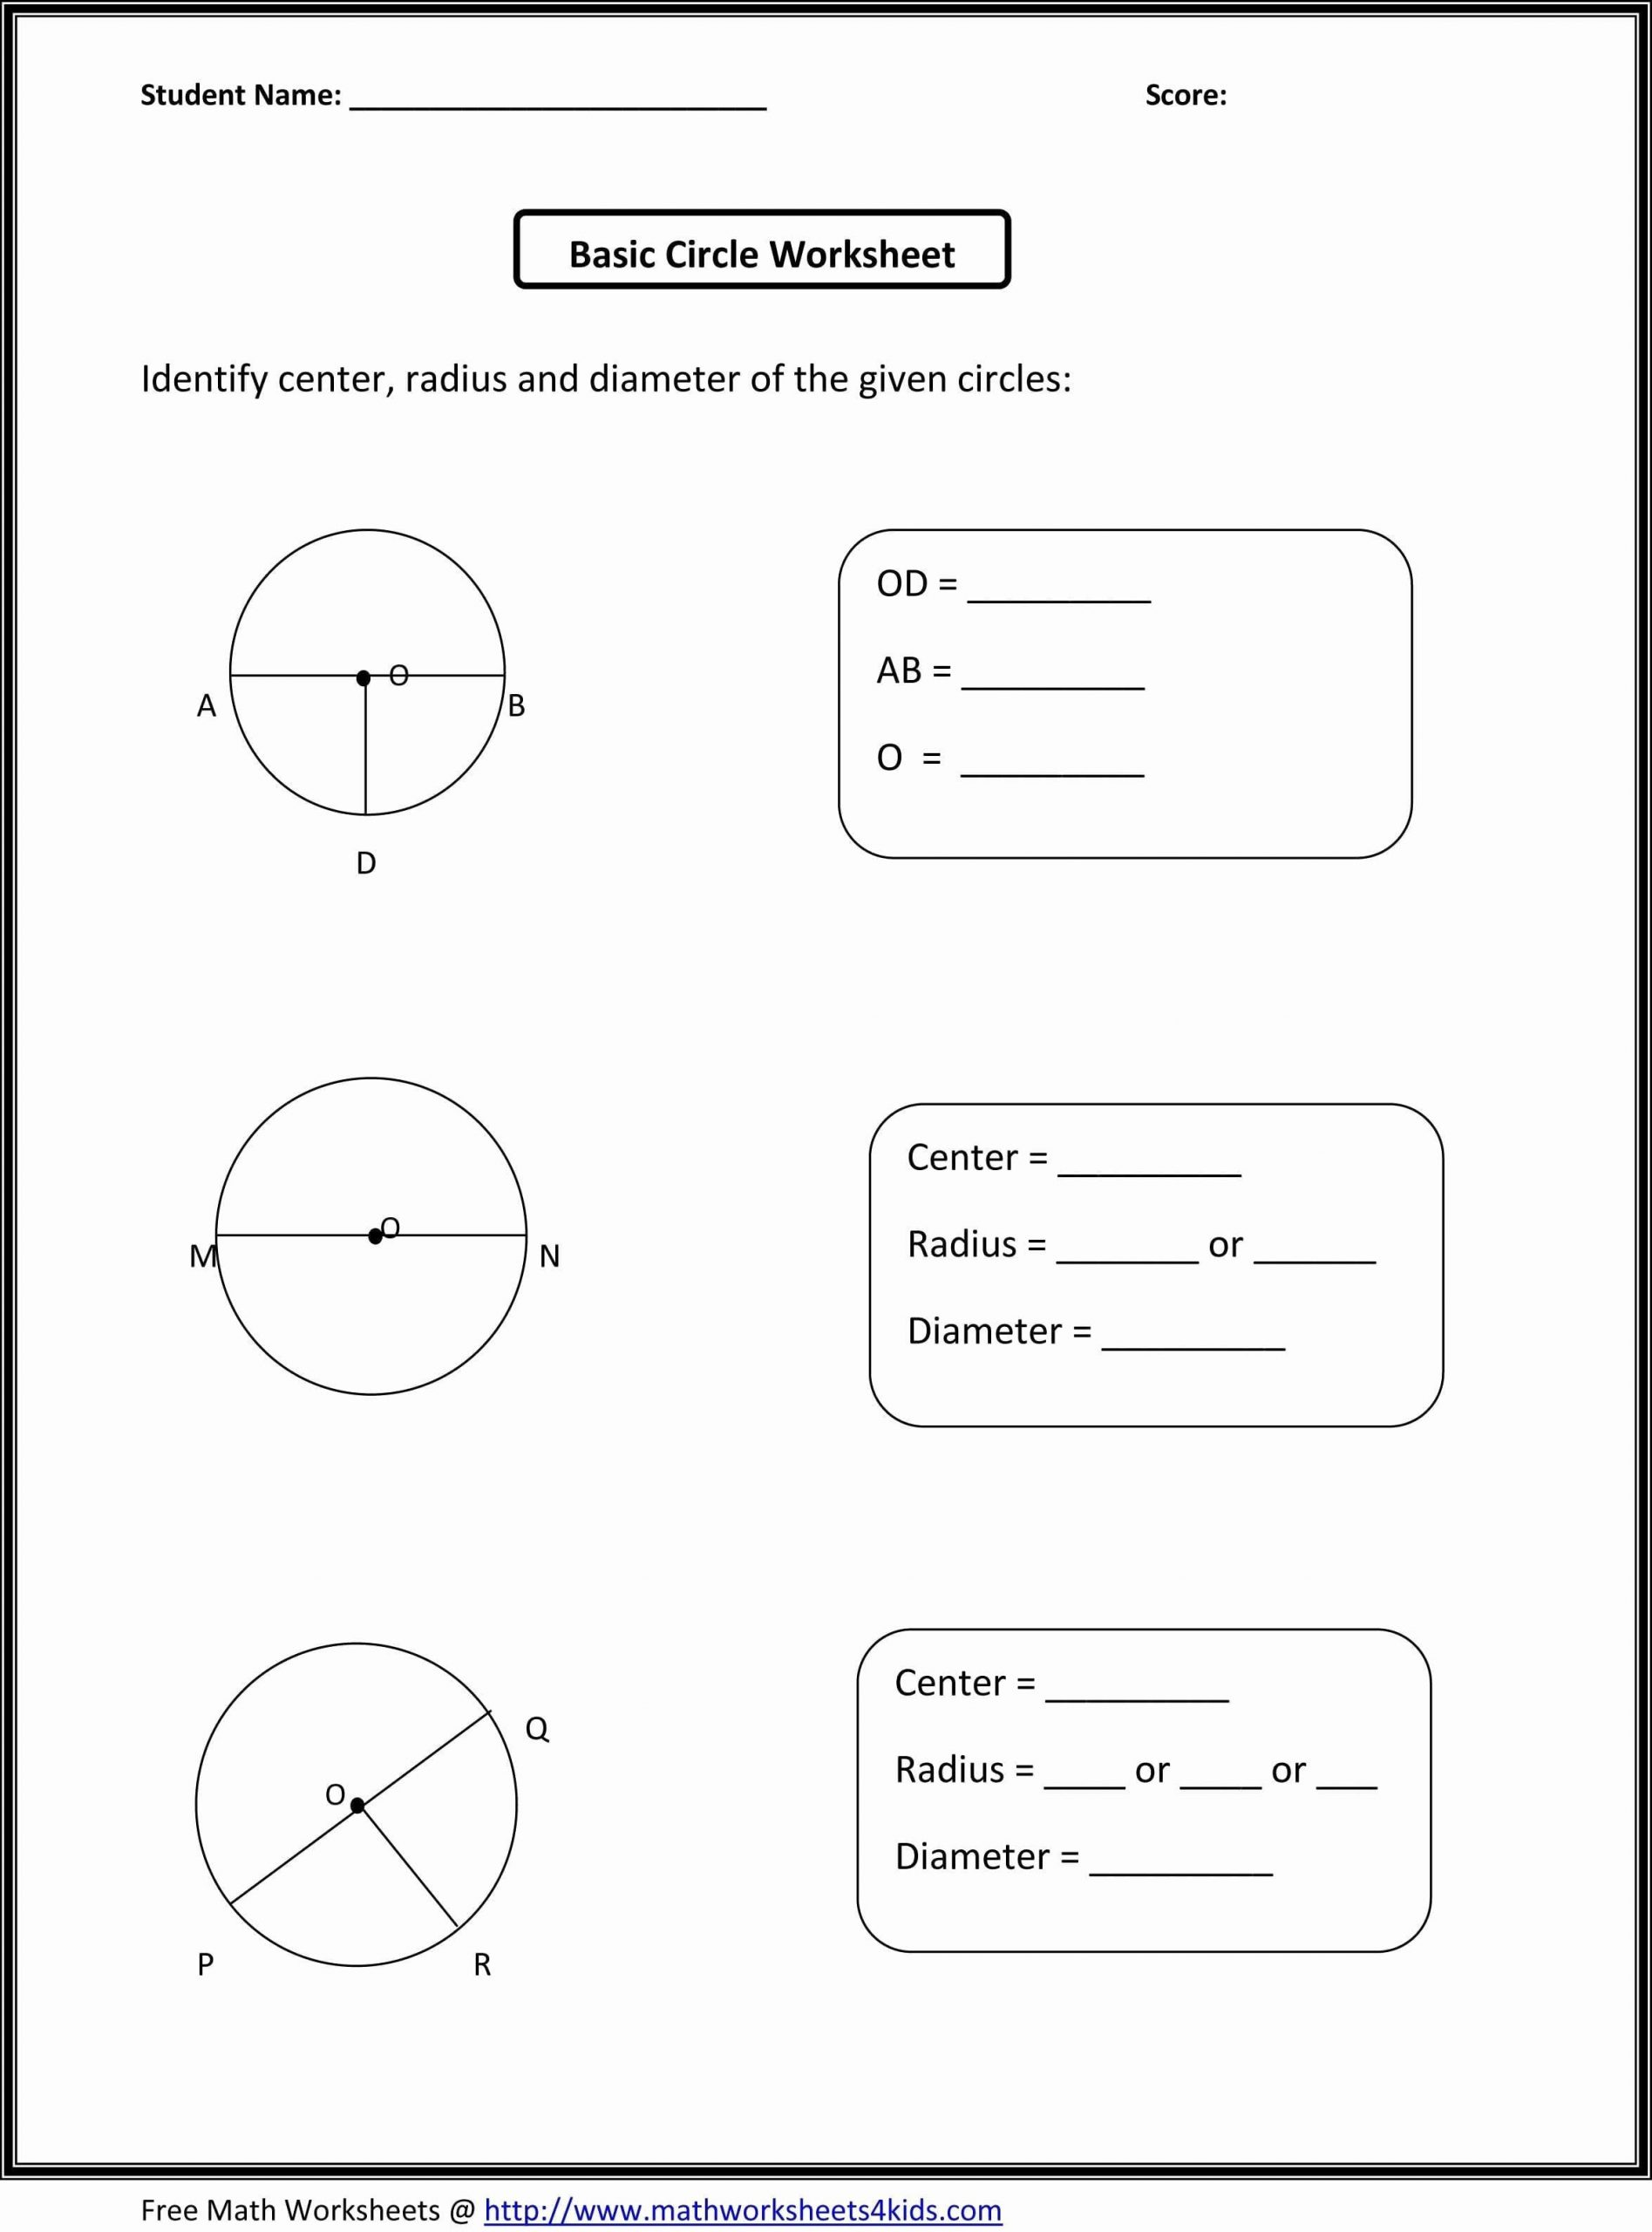 Energy Transformation Worksheet Pdf Energy Transformation Ic Worksheet Answers